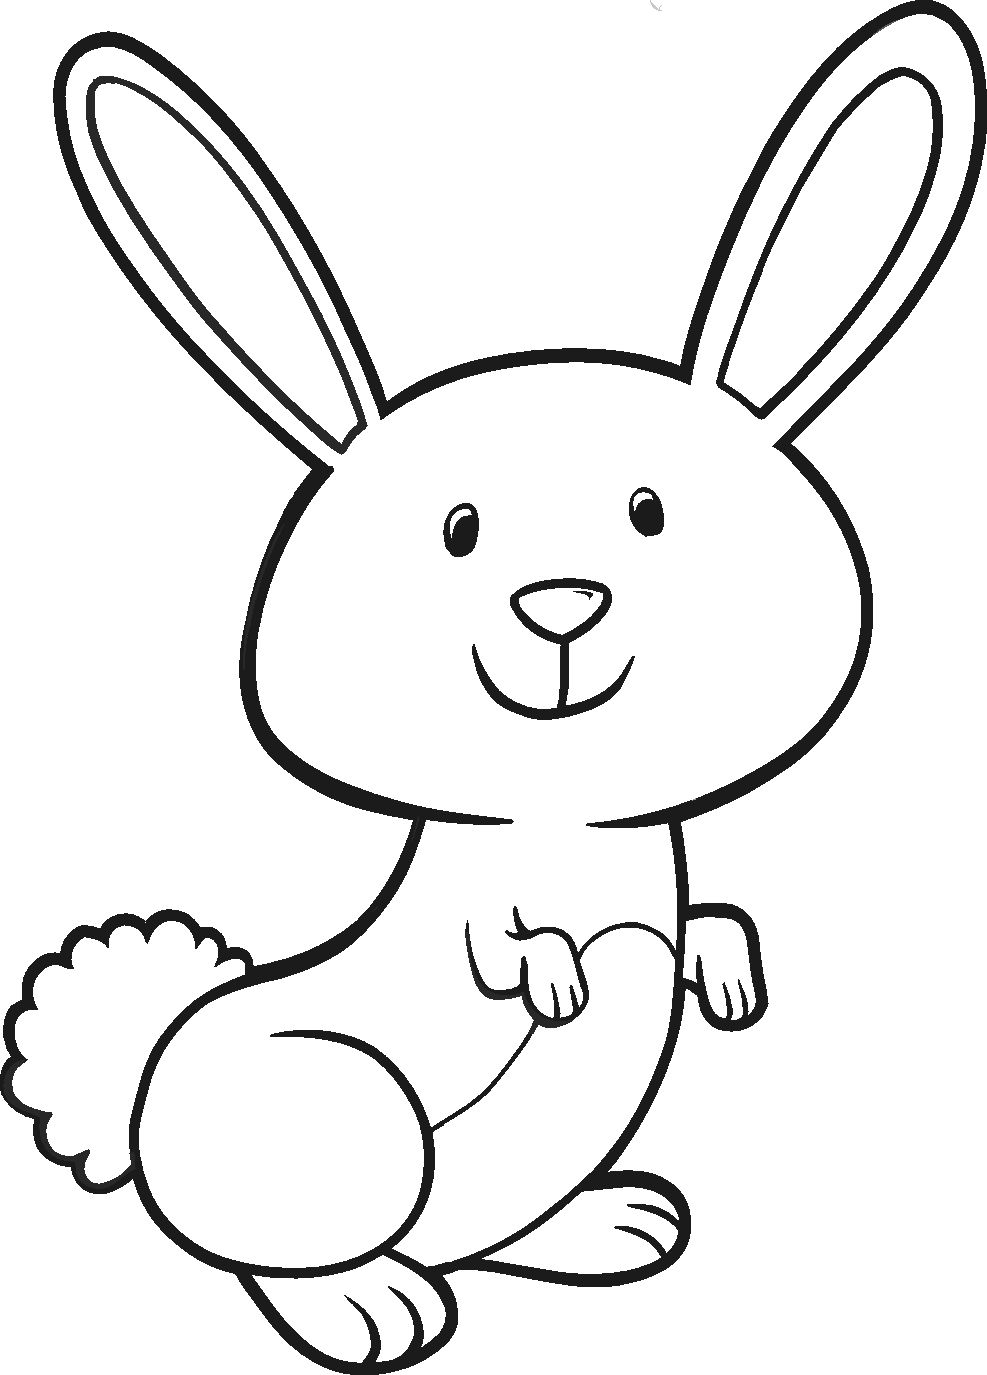 Pin By Shar Fowles On Nursery Bunny Coloring Pages Easter